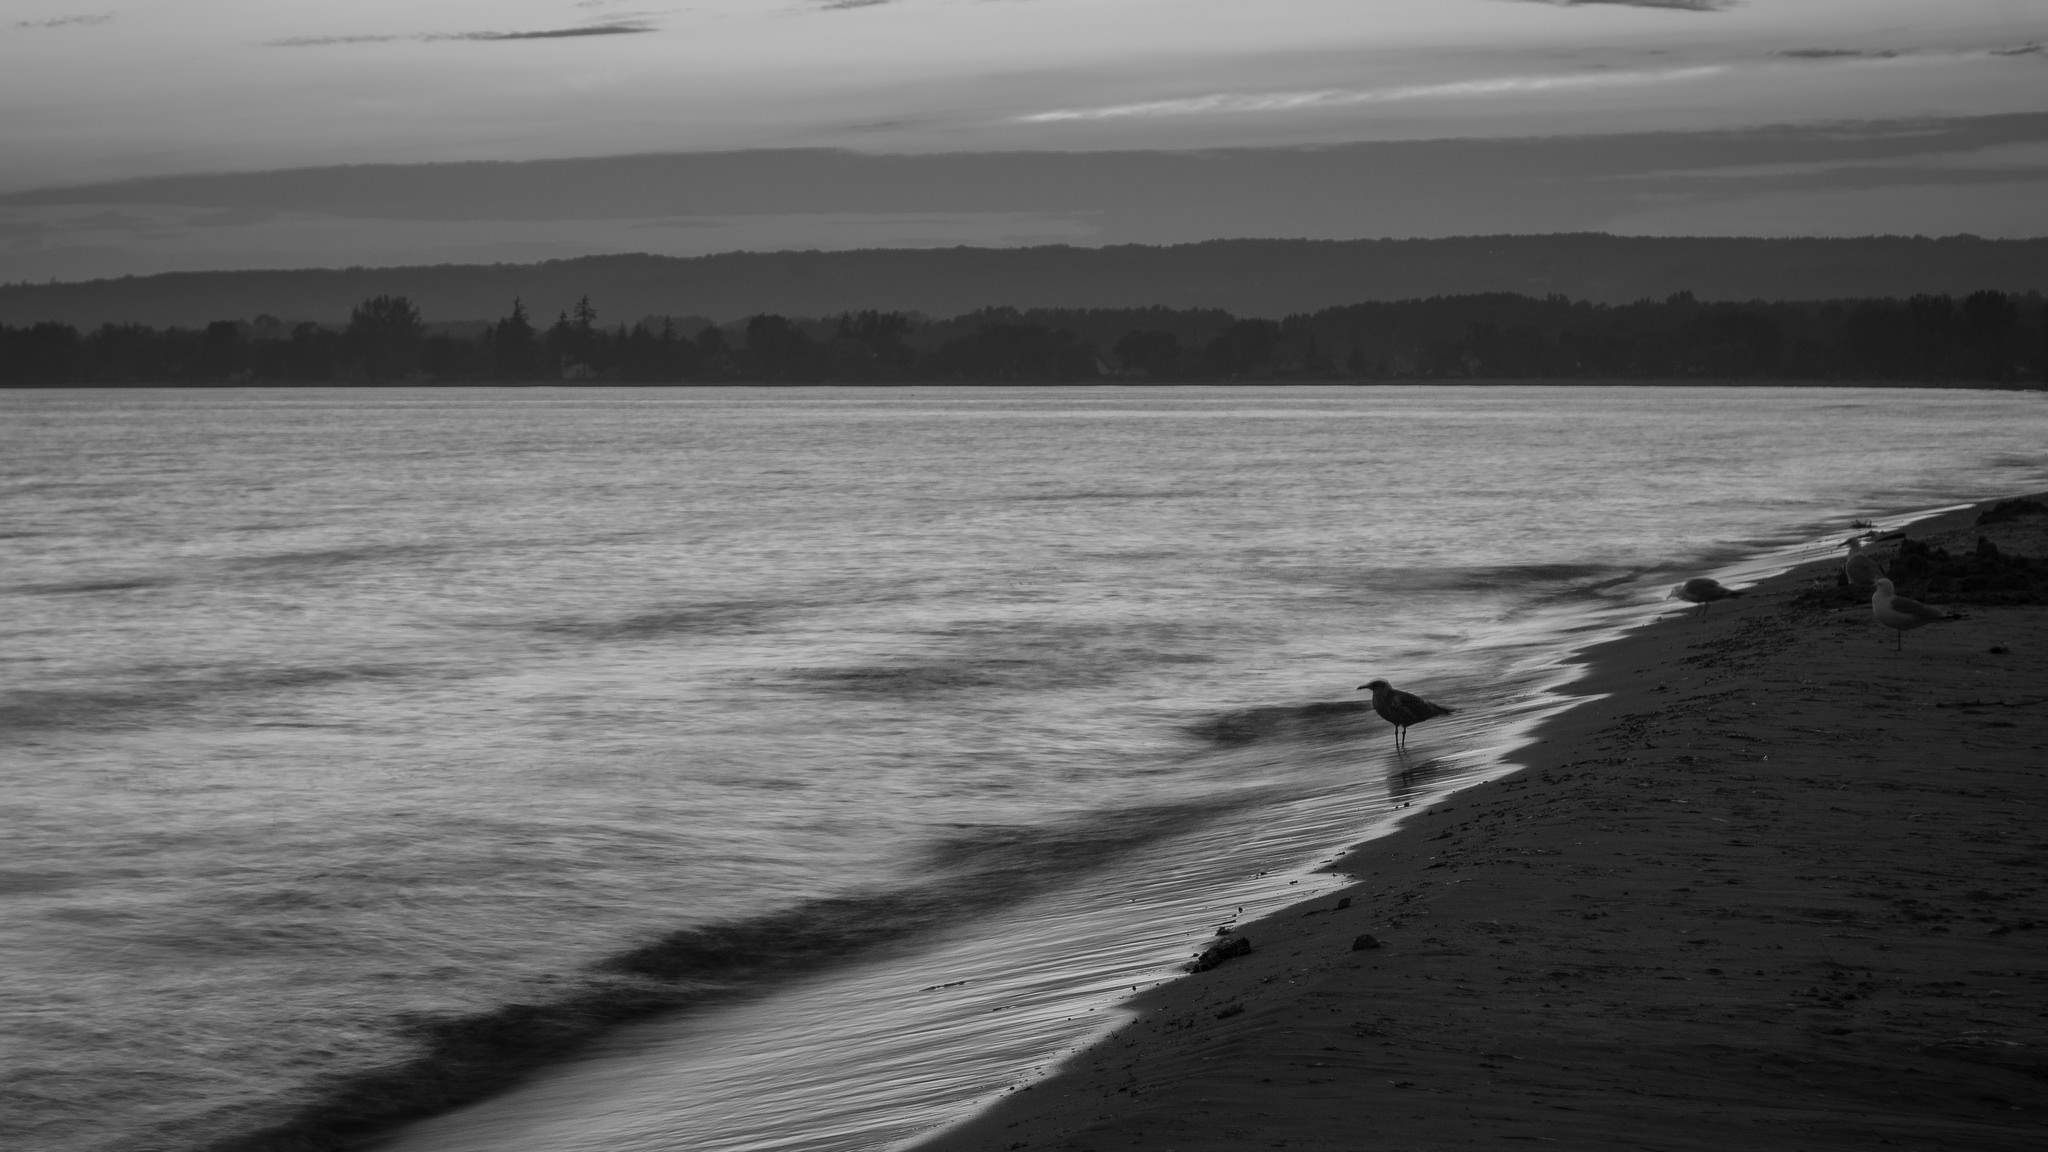 Presqu'ile Sunset in Black and White (1s, f/8, ISO100)